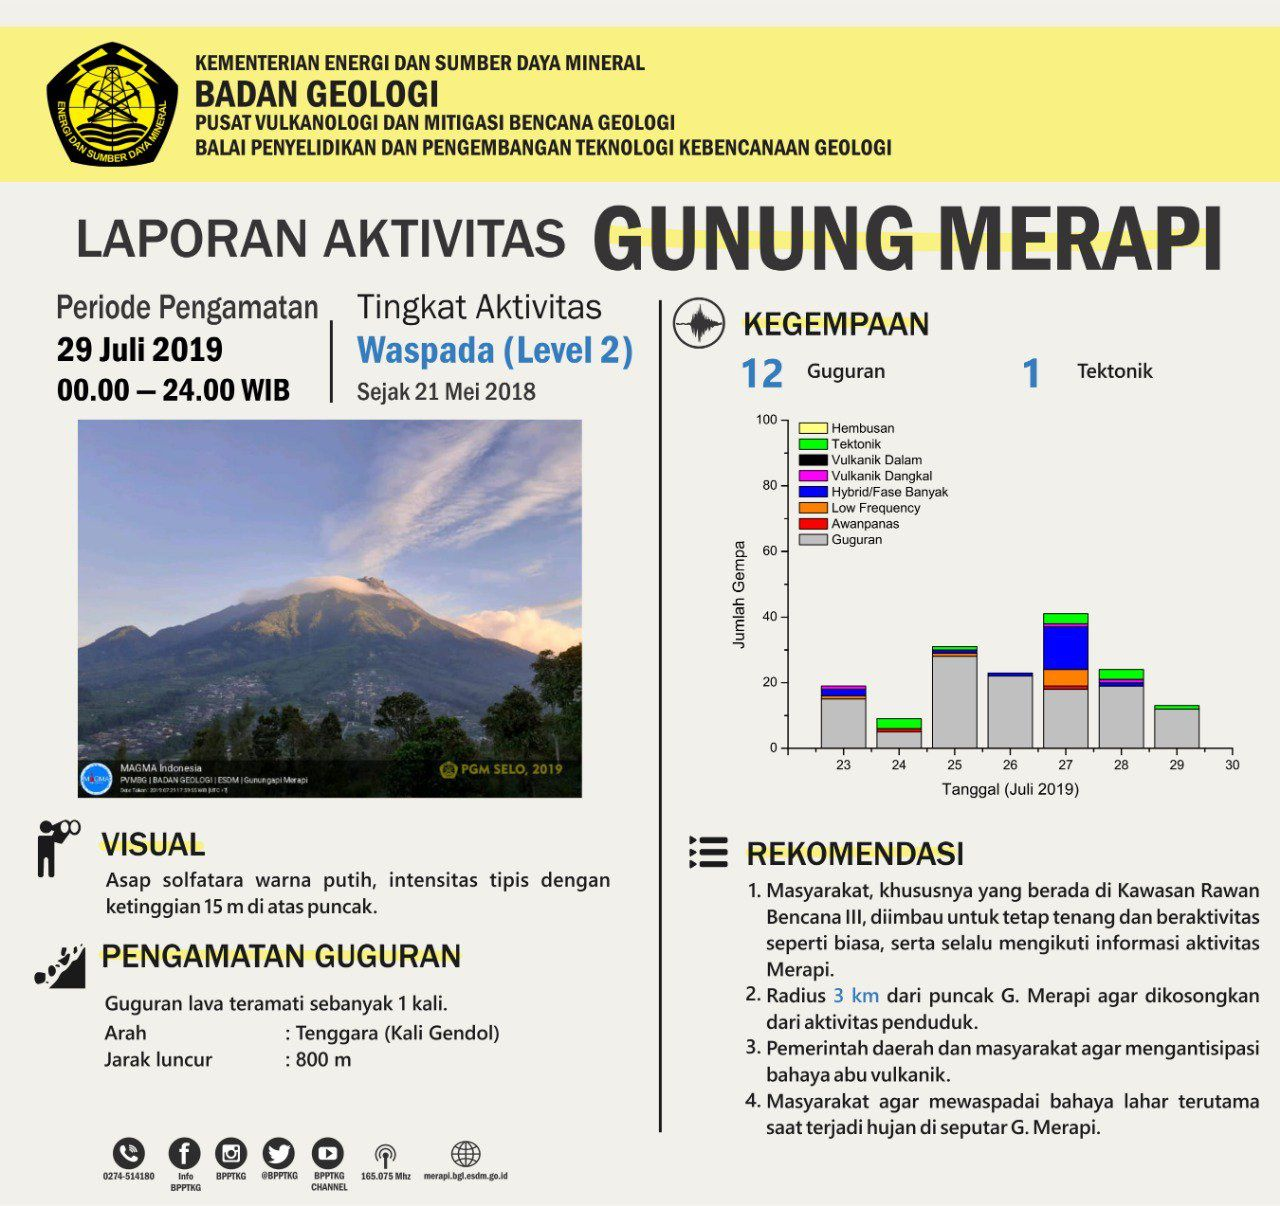 Merapi - summary table of the activity of the day of 29 July 2019 - Doc. BPPTKGBPPTKG